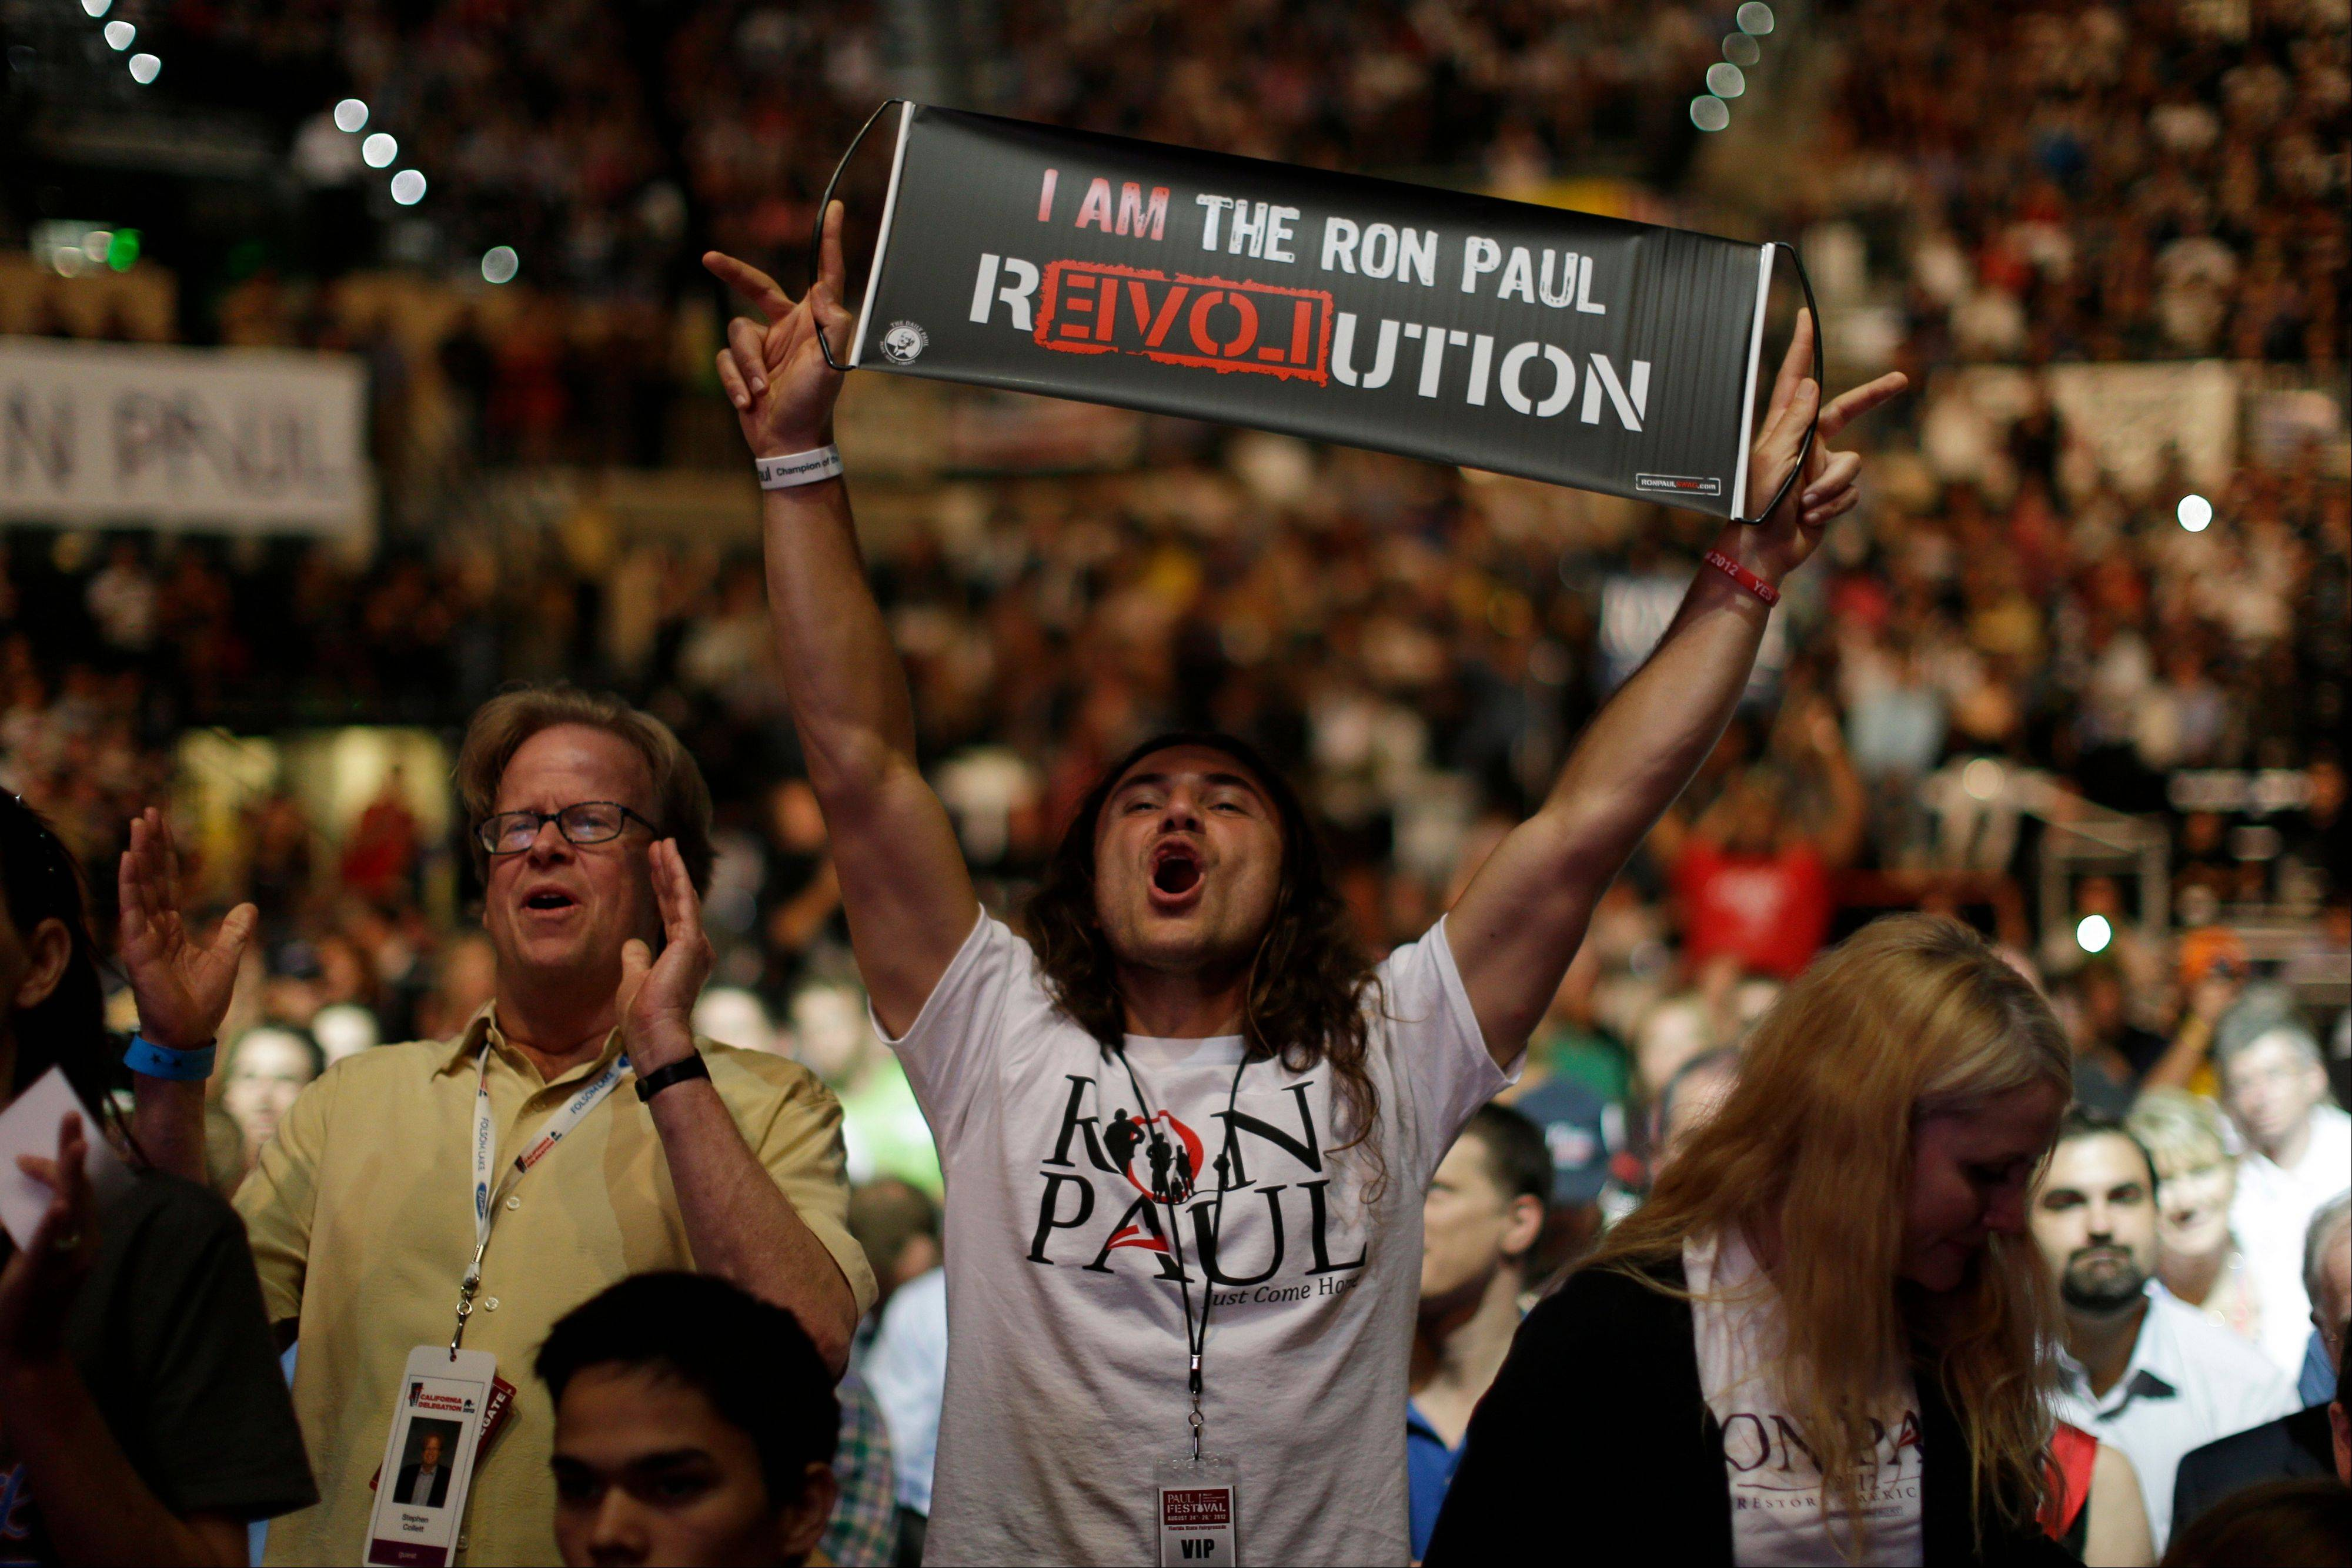 Vreth Liberty Zatikyan from Santa Monica, Calif., shows his support for Rep. Ron Paul, during a rally at the University of South Florida Sun Dome on the sidelines of the Republican National Convention in Tampa, Fla., Sunday.